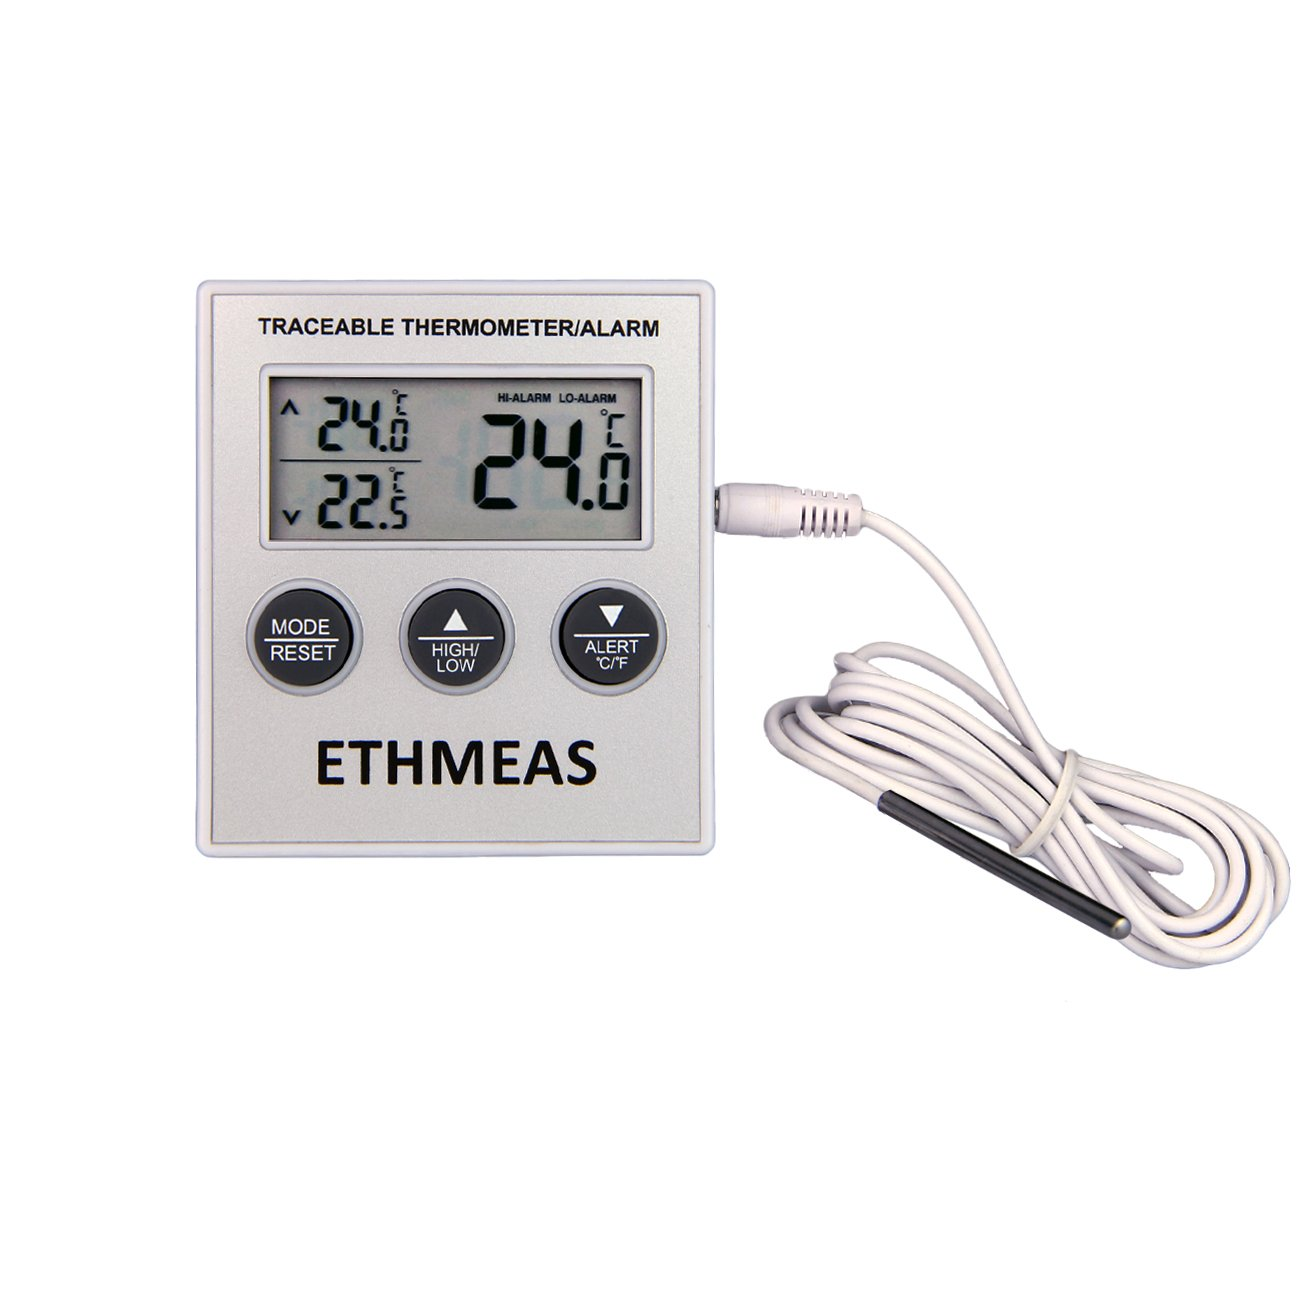 ETHMEAS Digital Refrigerator/Freezer/Fridge Thermometer Easy Readout Fridge Thermometer with Large LCD Display High Low Temperature Memory & Alarm Function